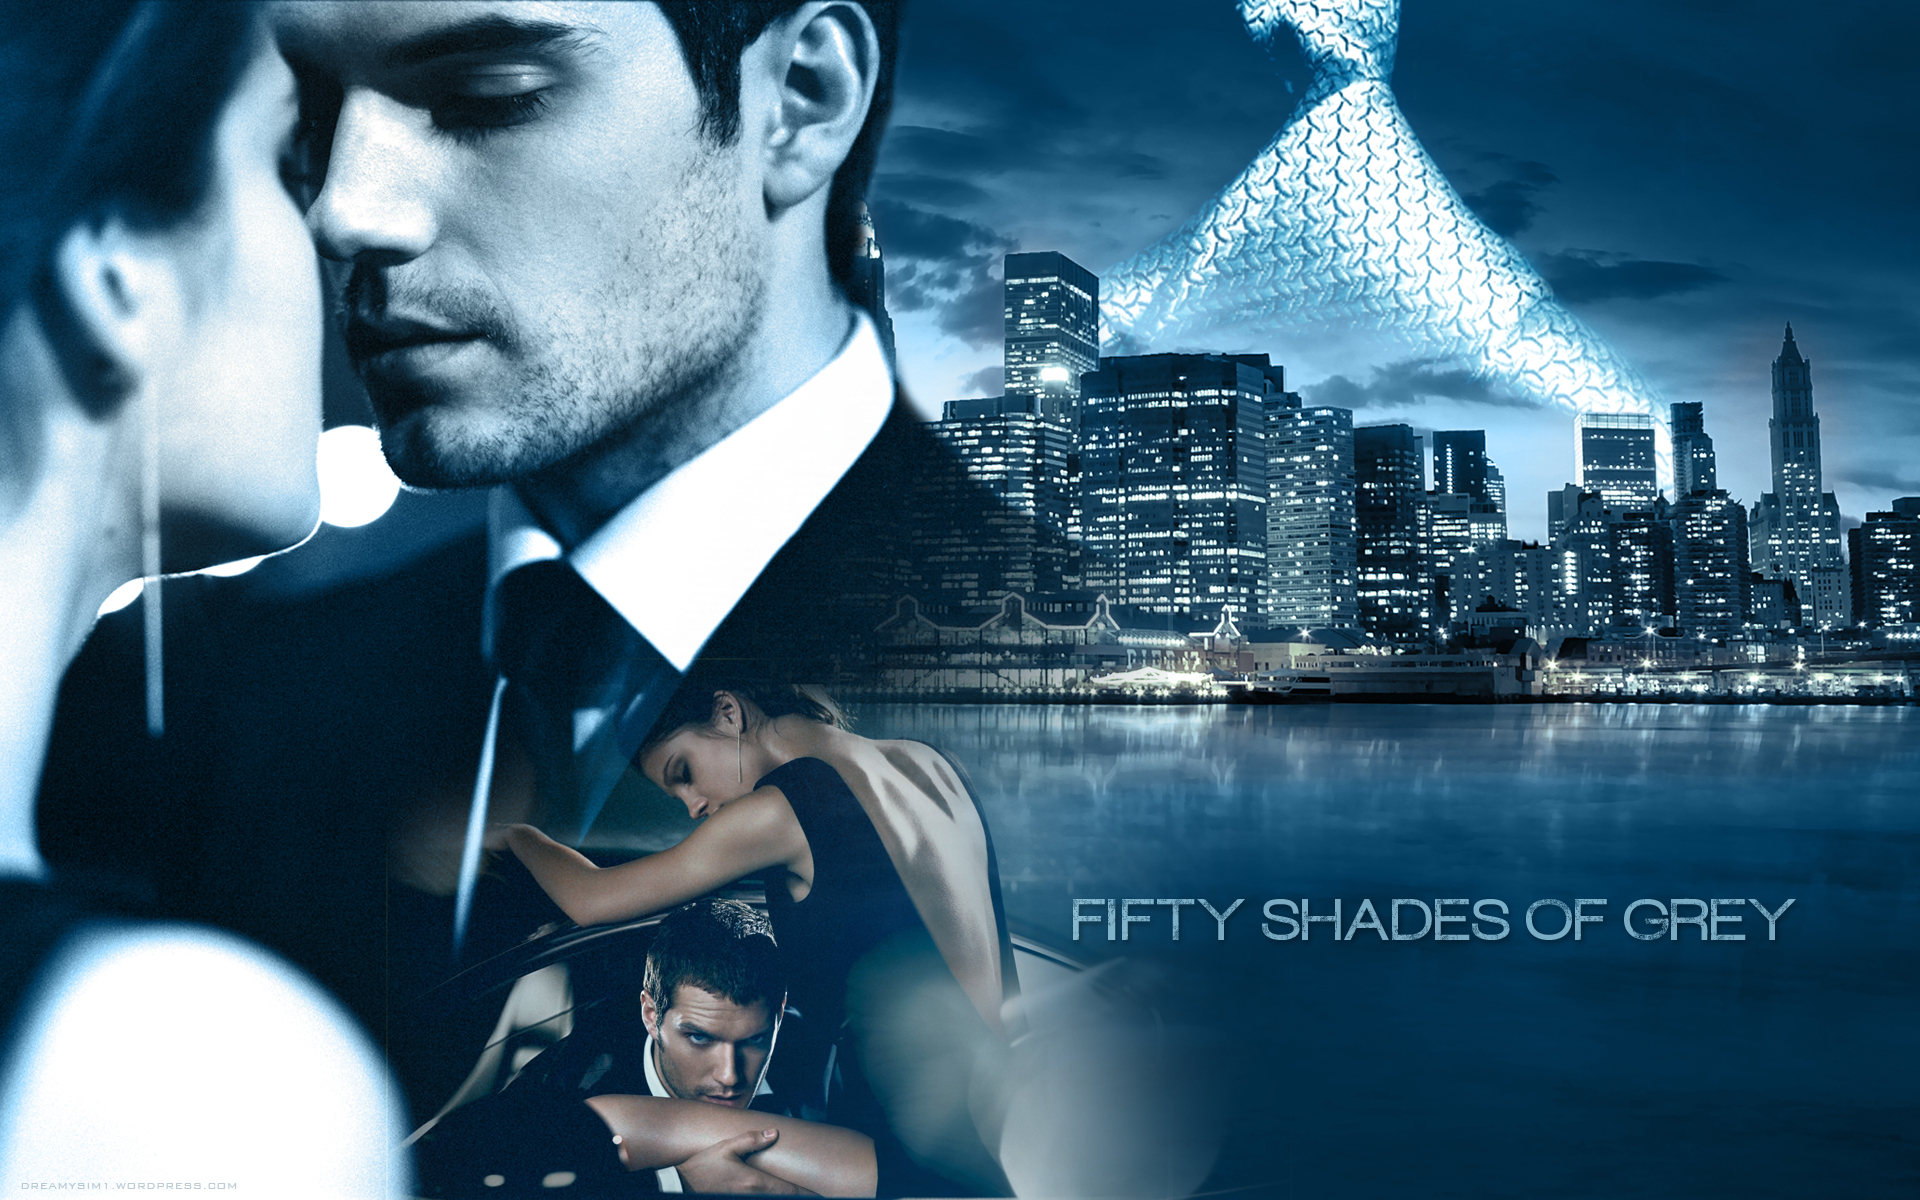 Fifty Shades of Grey - Fifty Shades Trilogy Wallpaper (33869300 ...